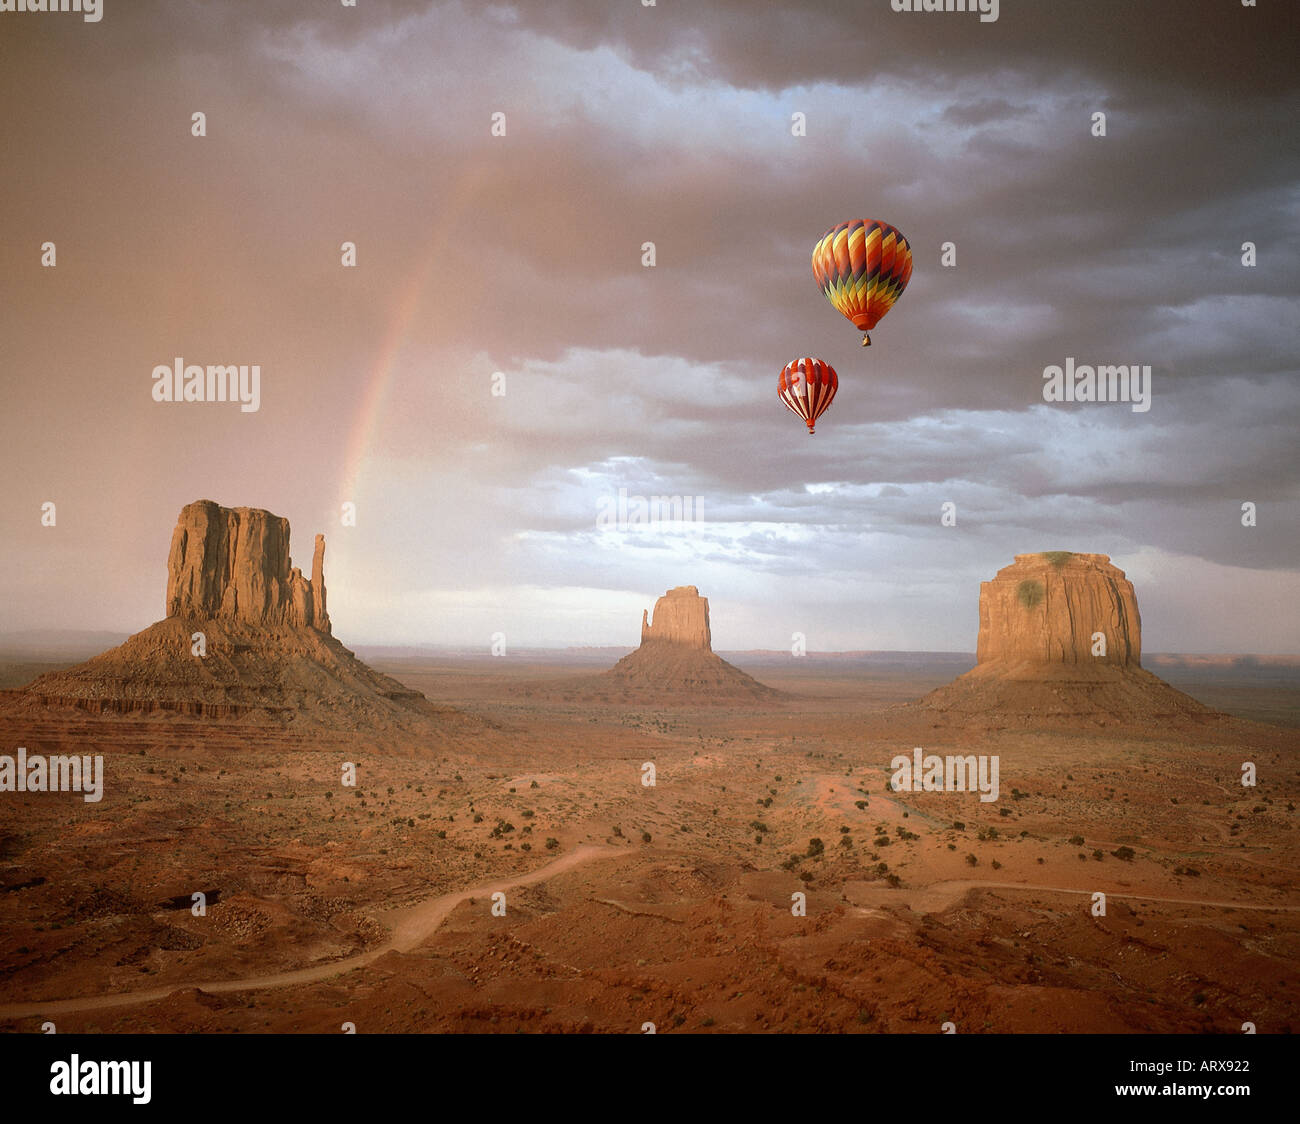 USA - ARIZONA: Monument Valley Navajo Tribal Park Stockfoto